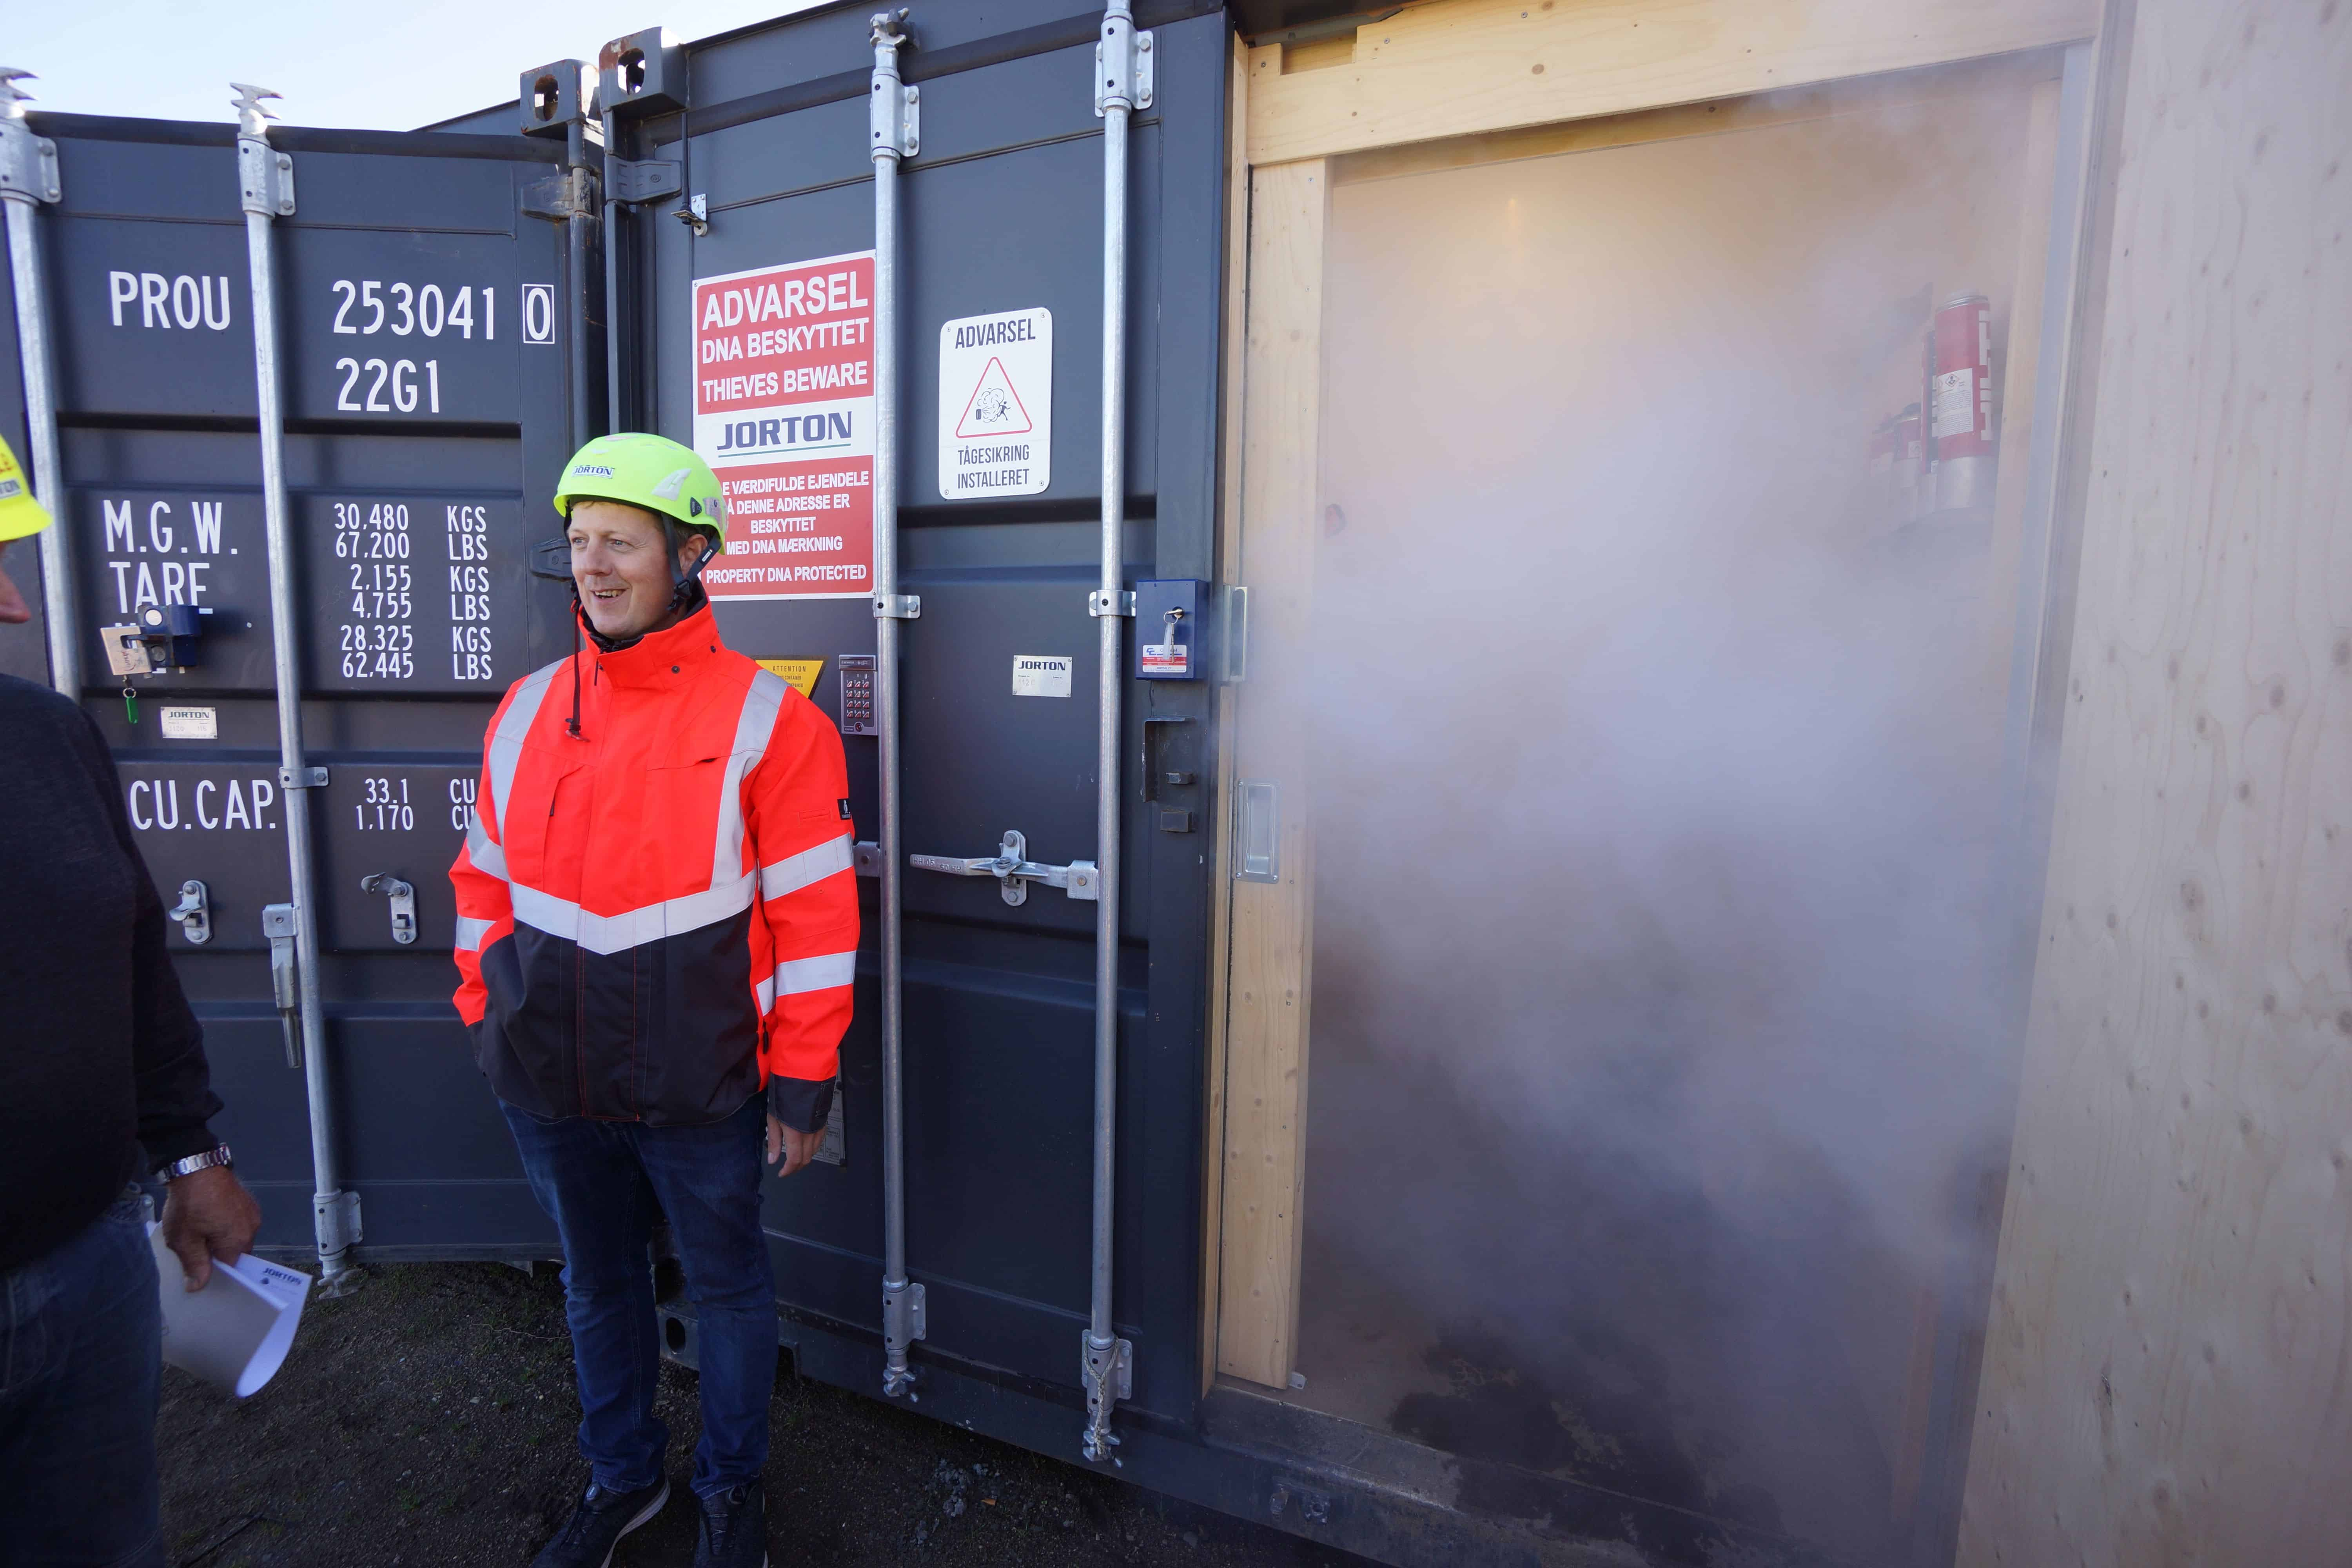 Security fog, GPS, shaking sensors and sirens now secure the building site's values